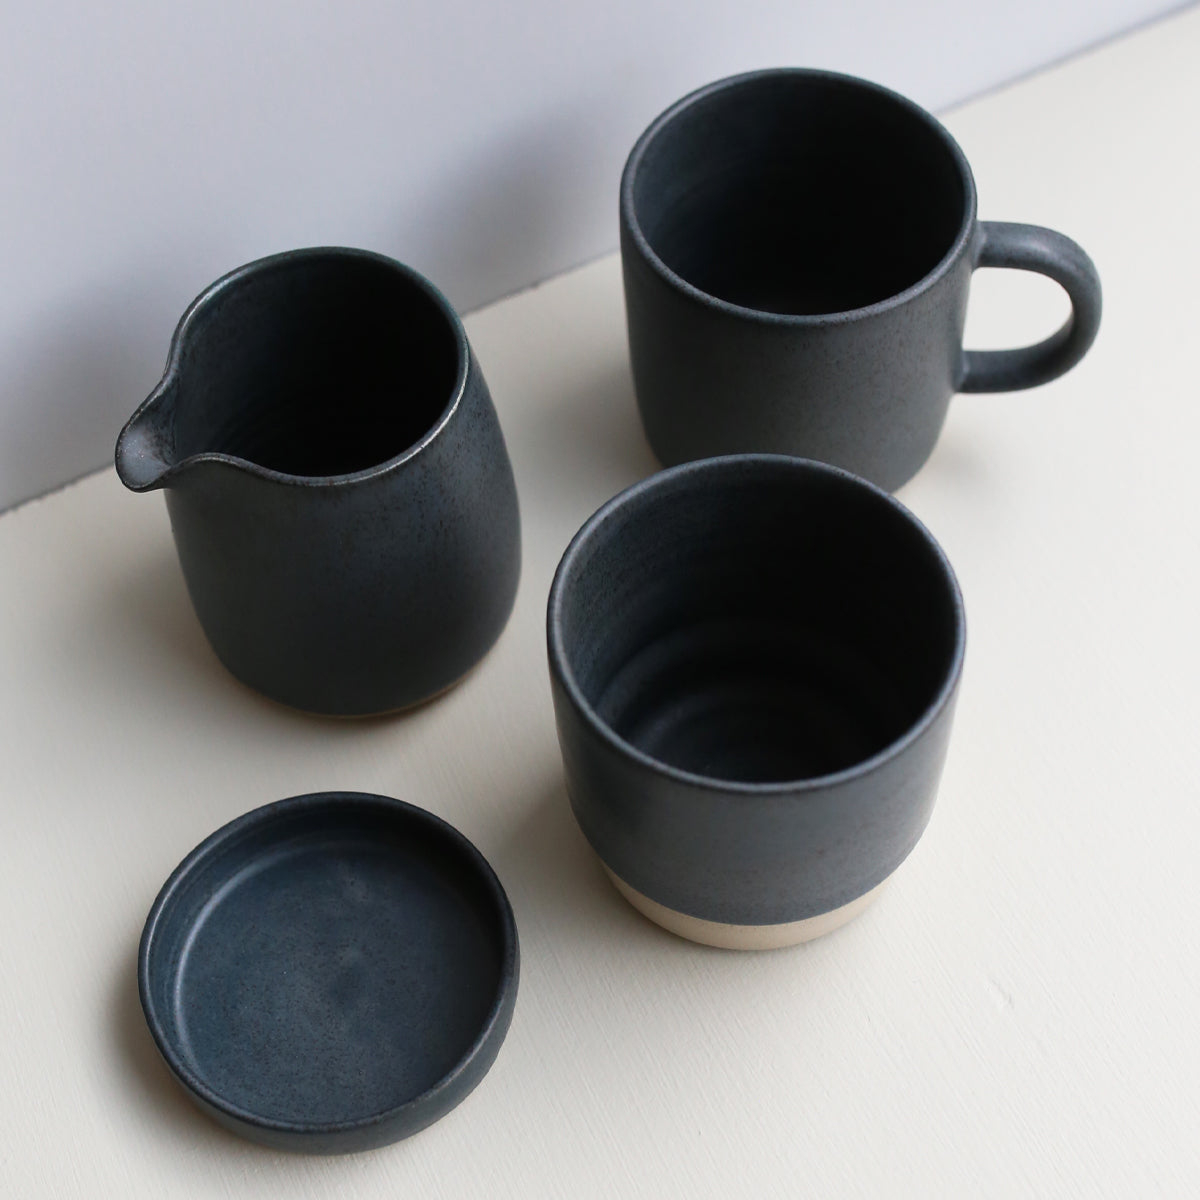 products/Oda_Mug_withhandle__Blue_02_6a77fd7a-cbab-40d5-b390-c9e17ac73912.jpg